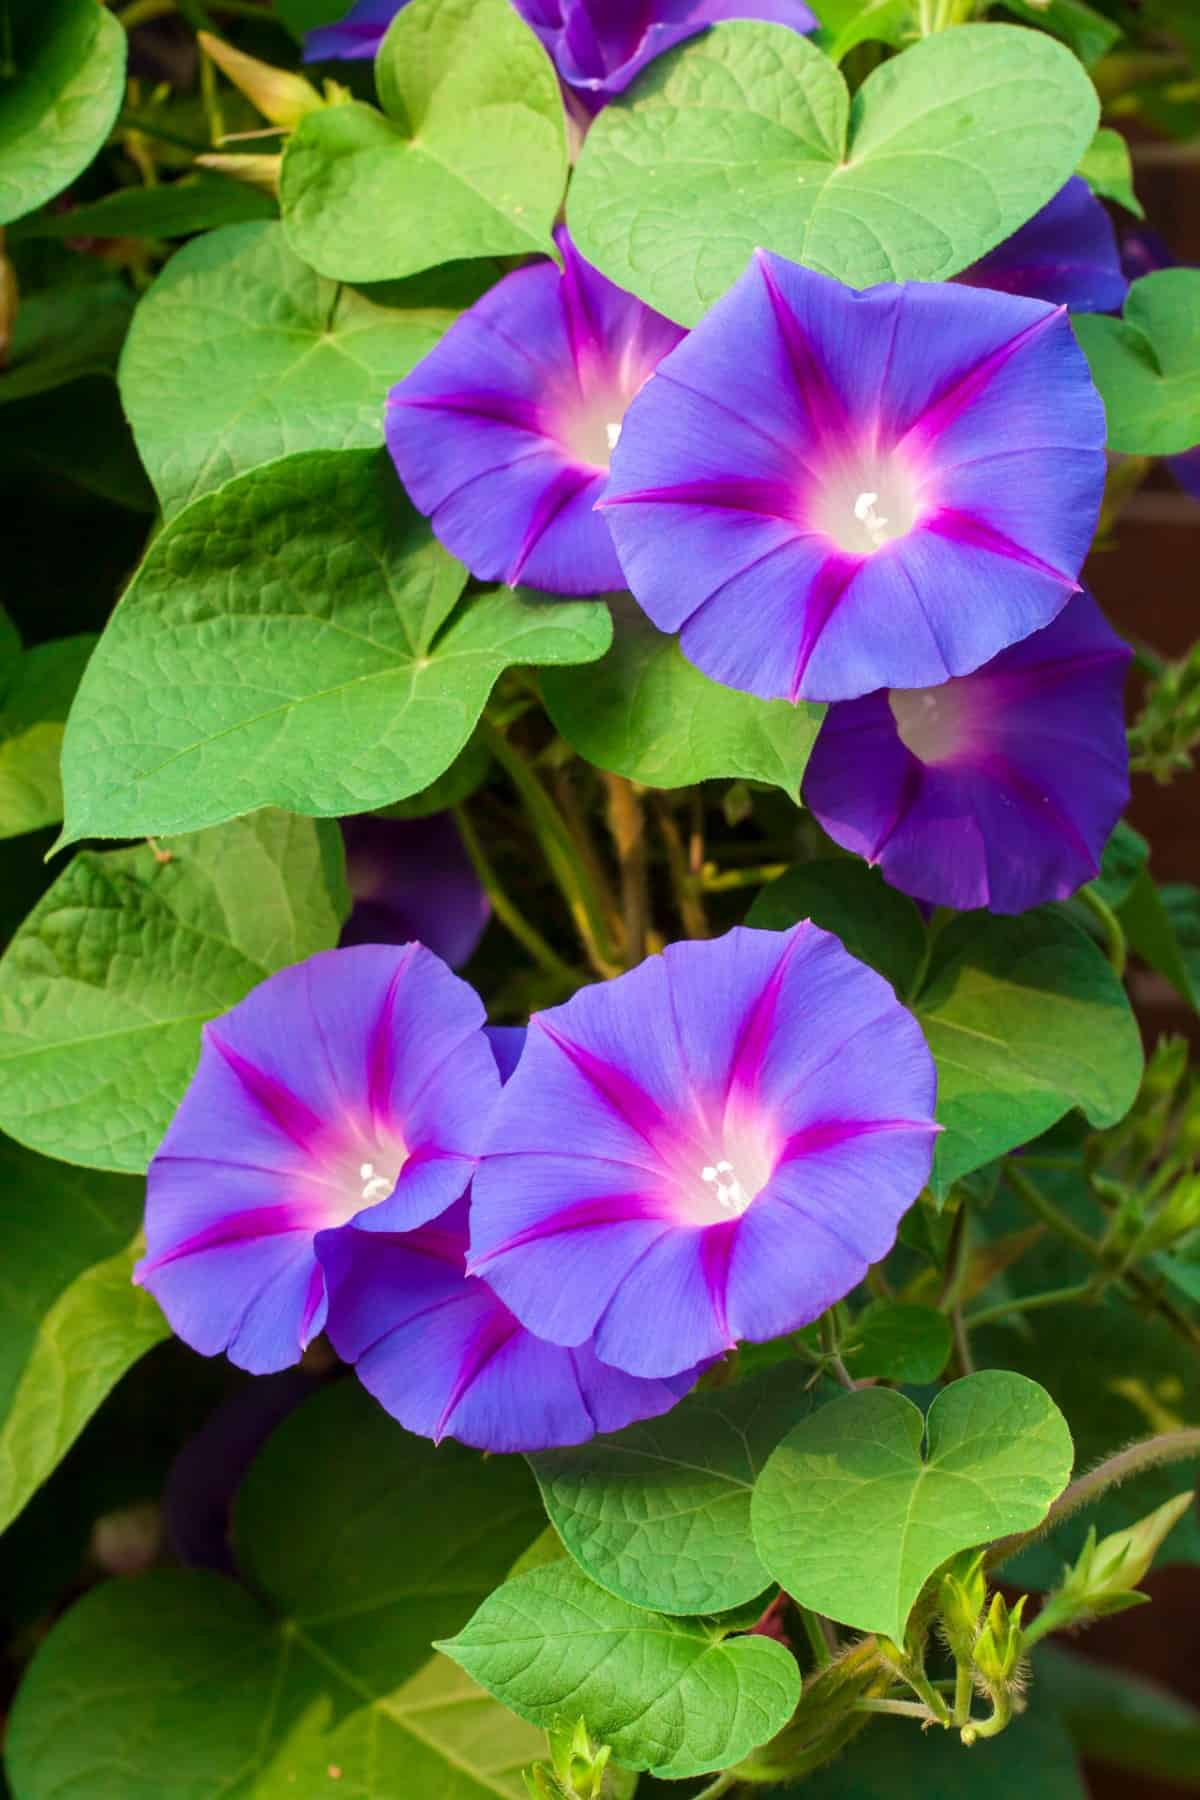 morning glory flowers open in the morning and die by the same night